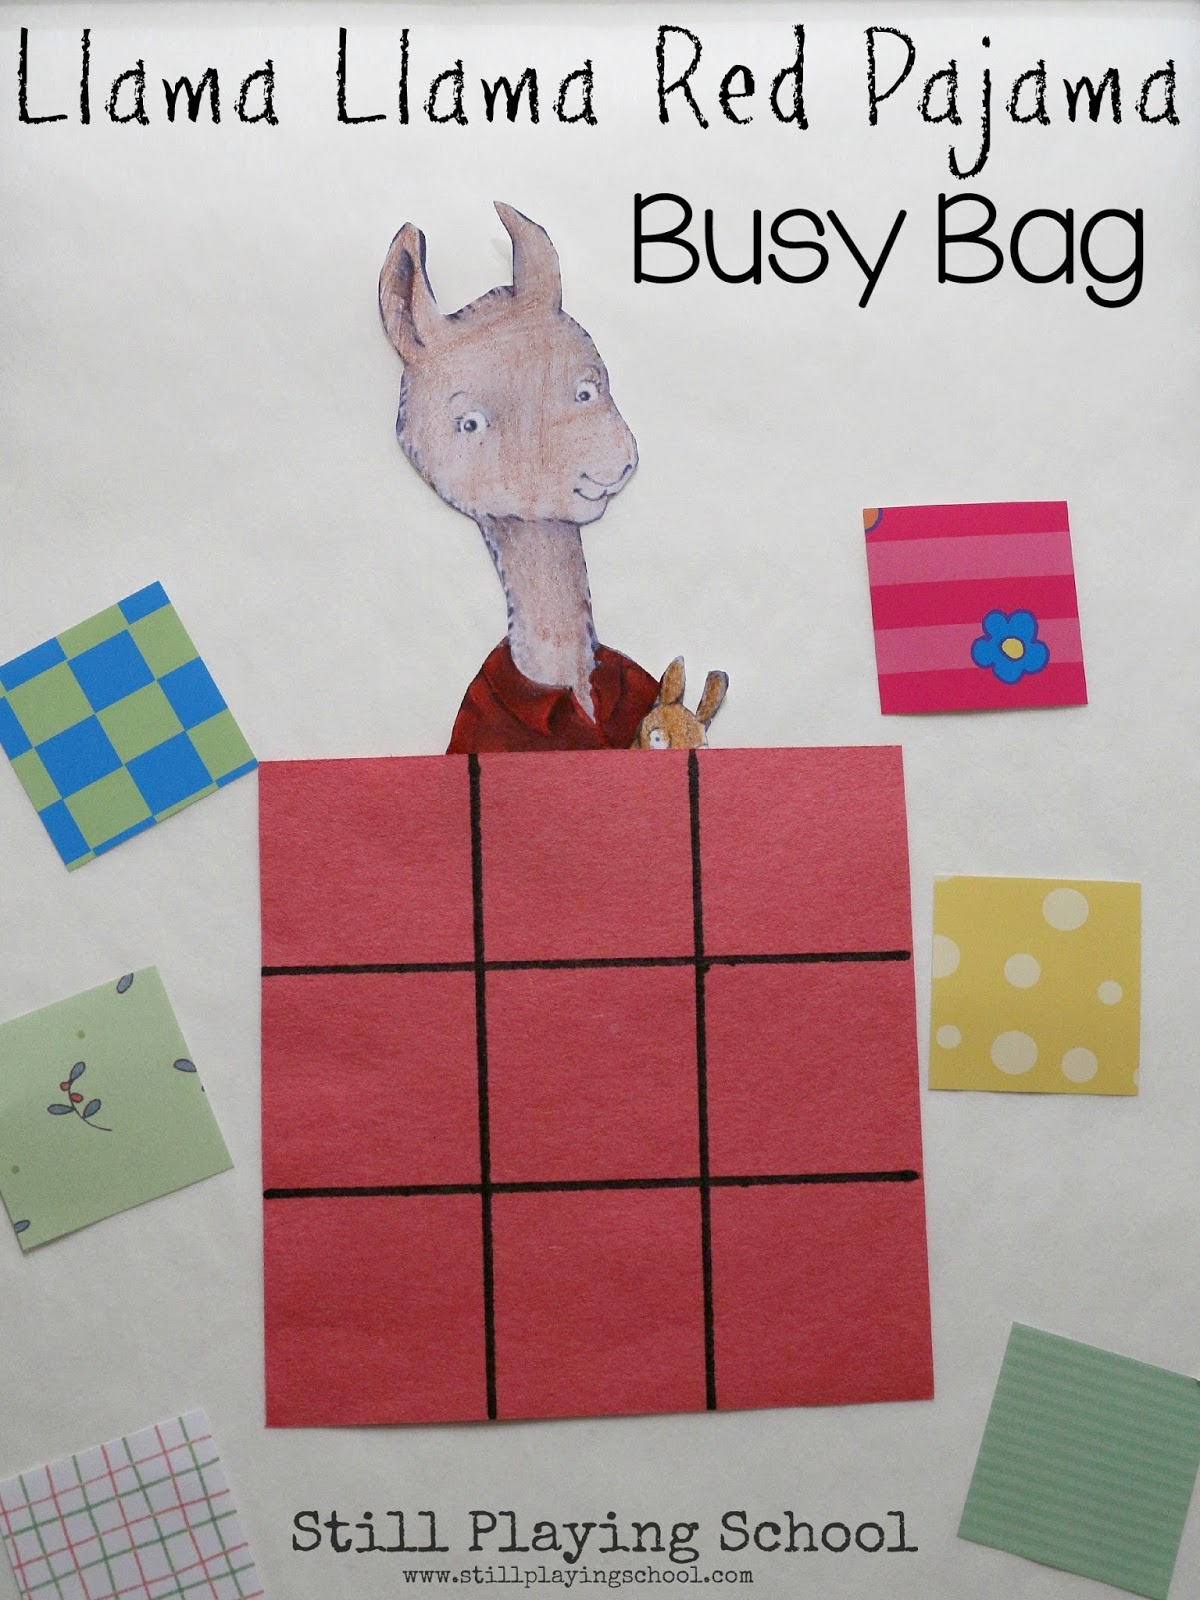 Llama Llama Red Pajama Busy Bag